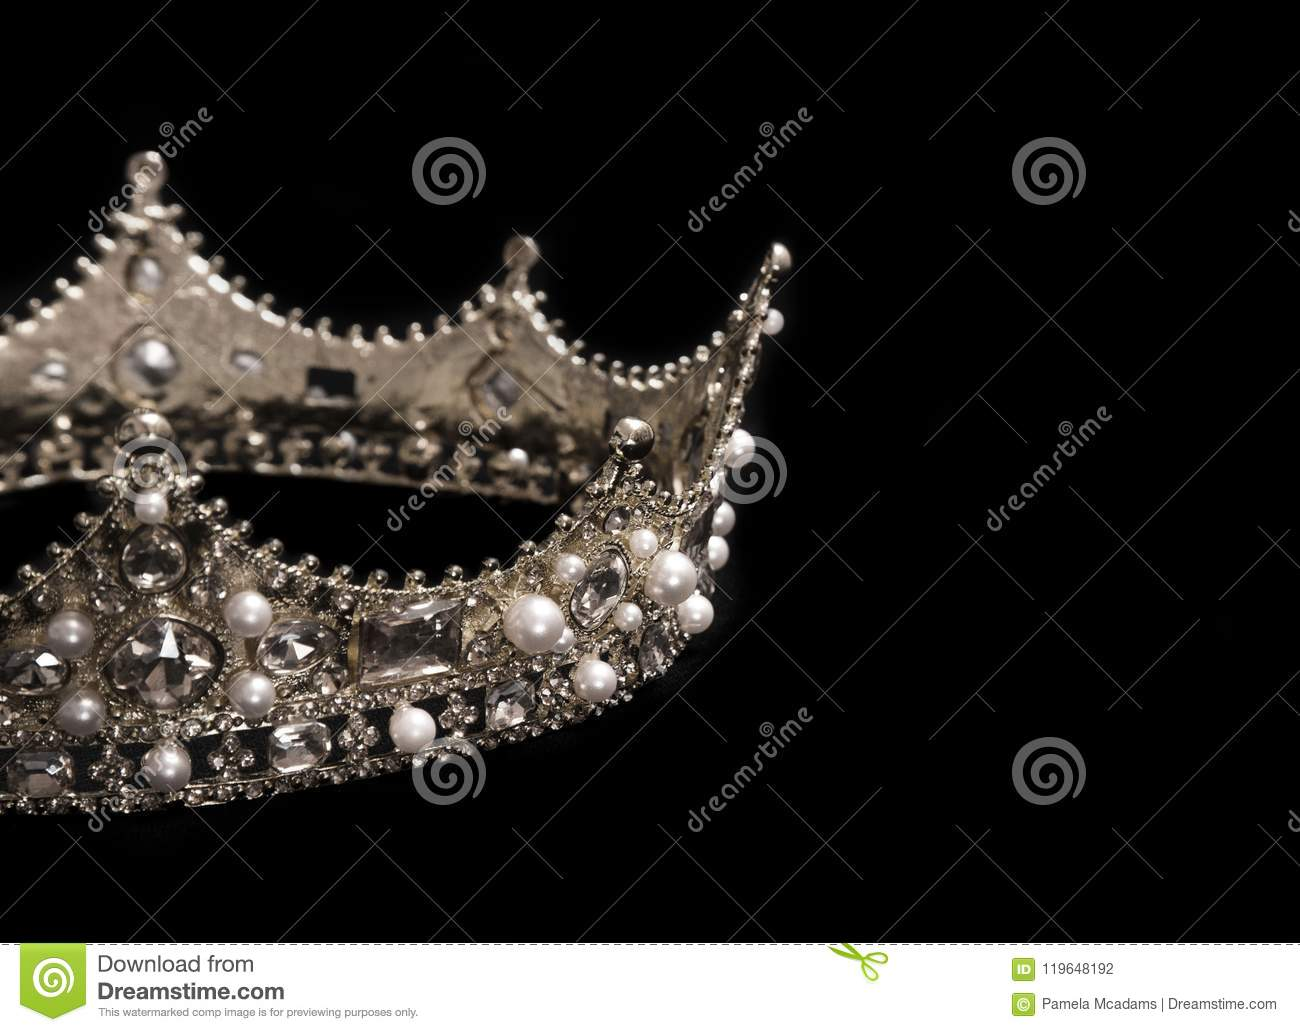 A King or Queens Crown